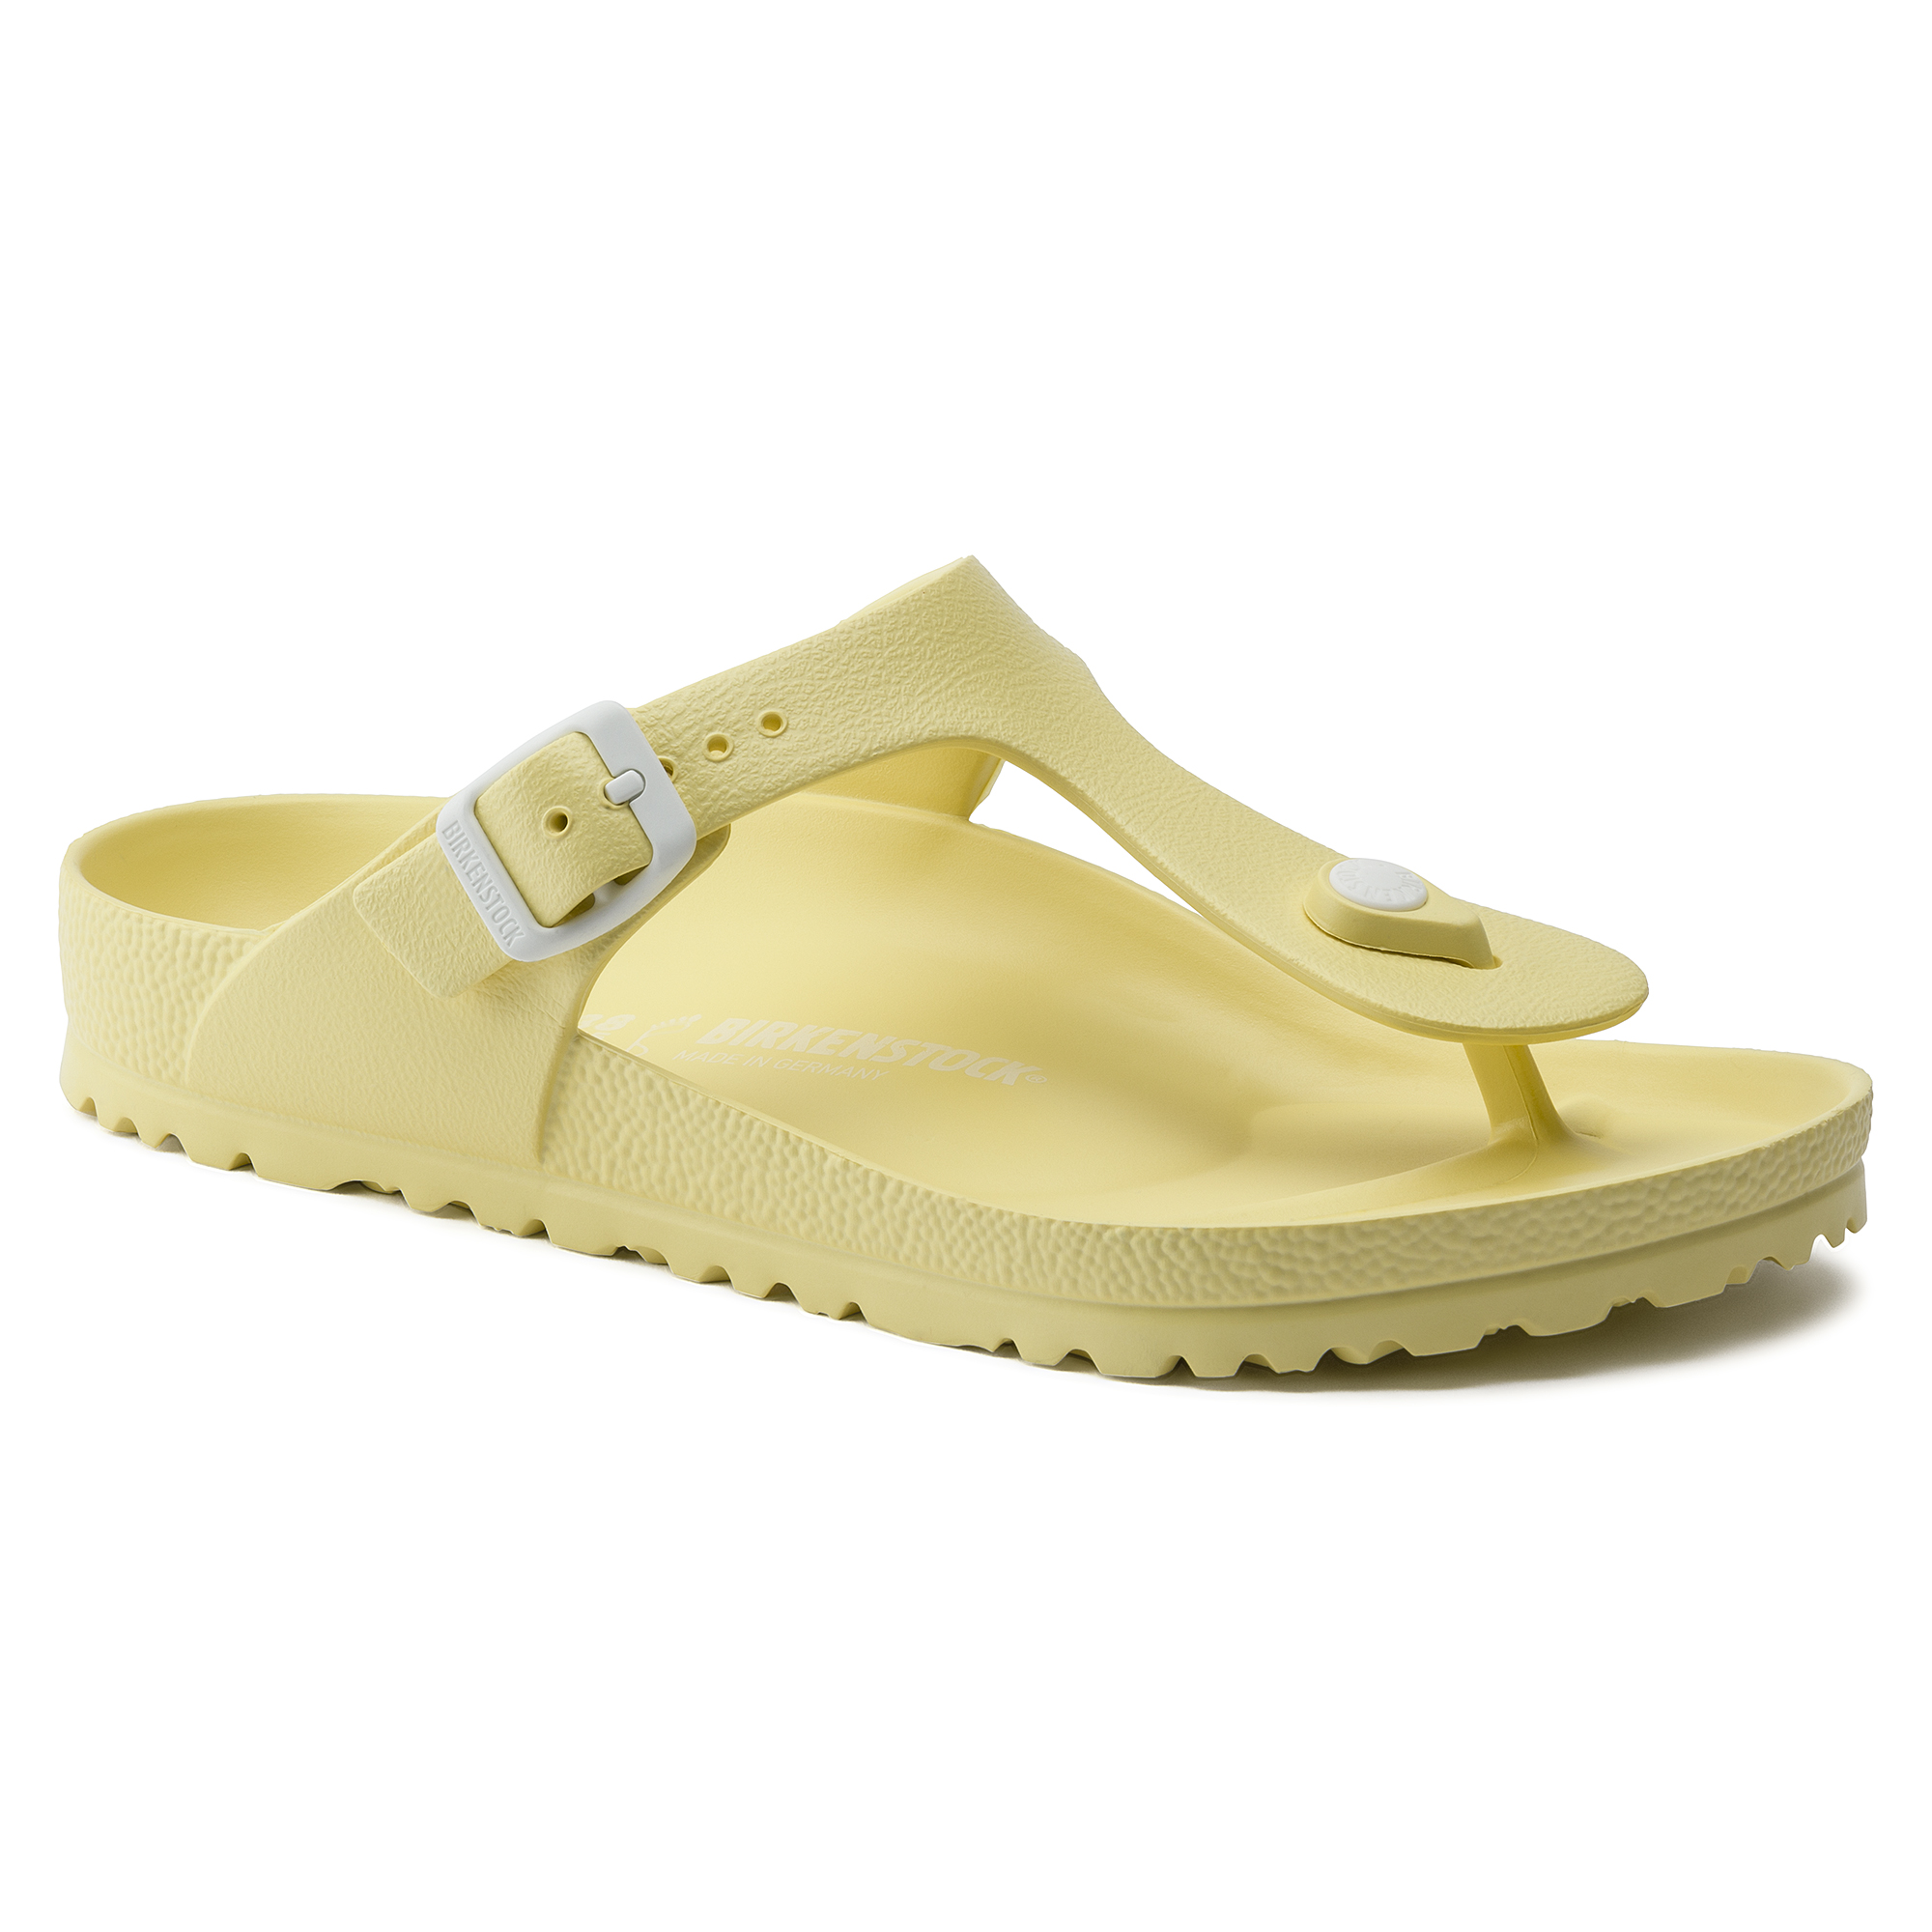 BIRKENSTOCK GIZEH EVA Womens Rubber Soft Yellow Toe Thong